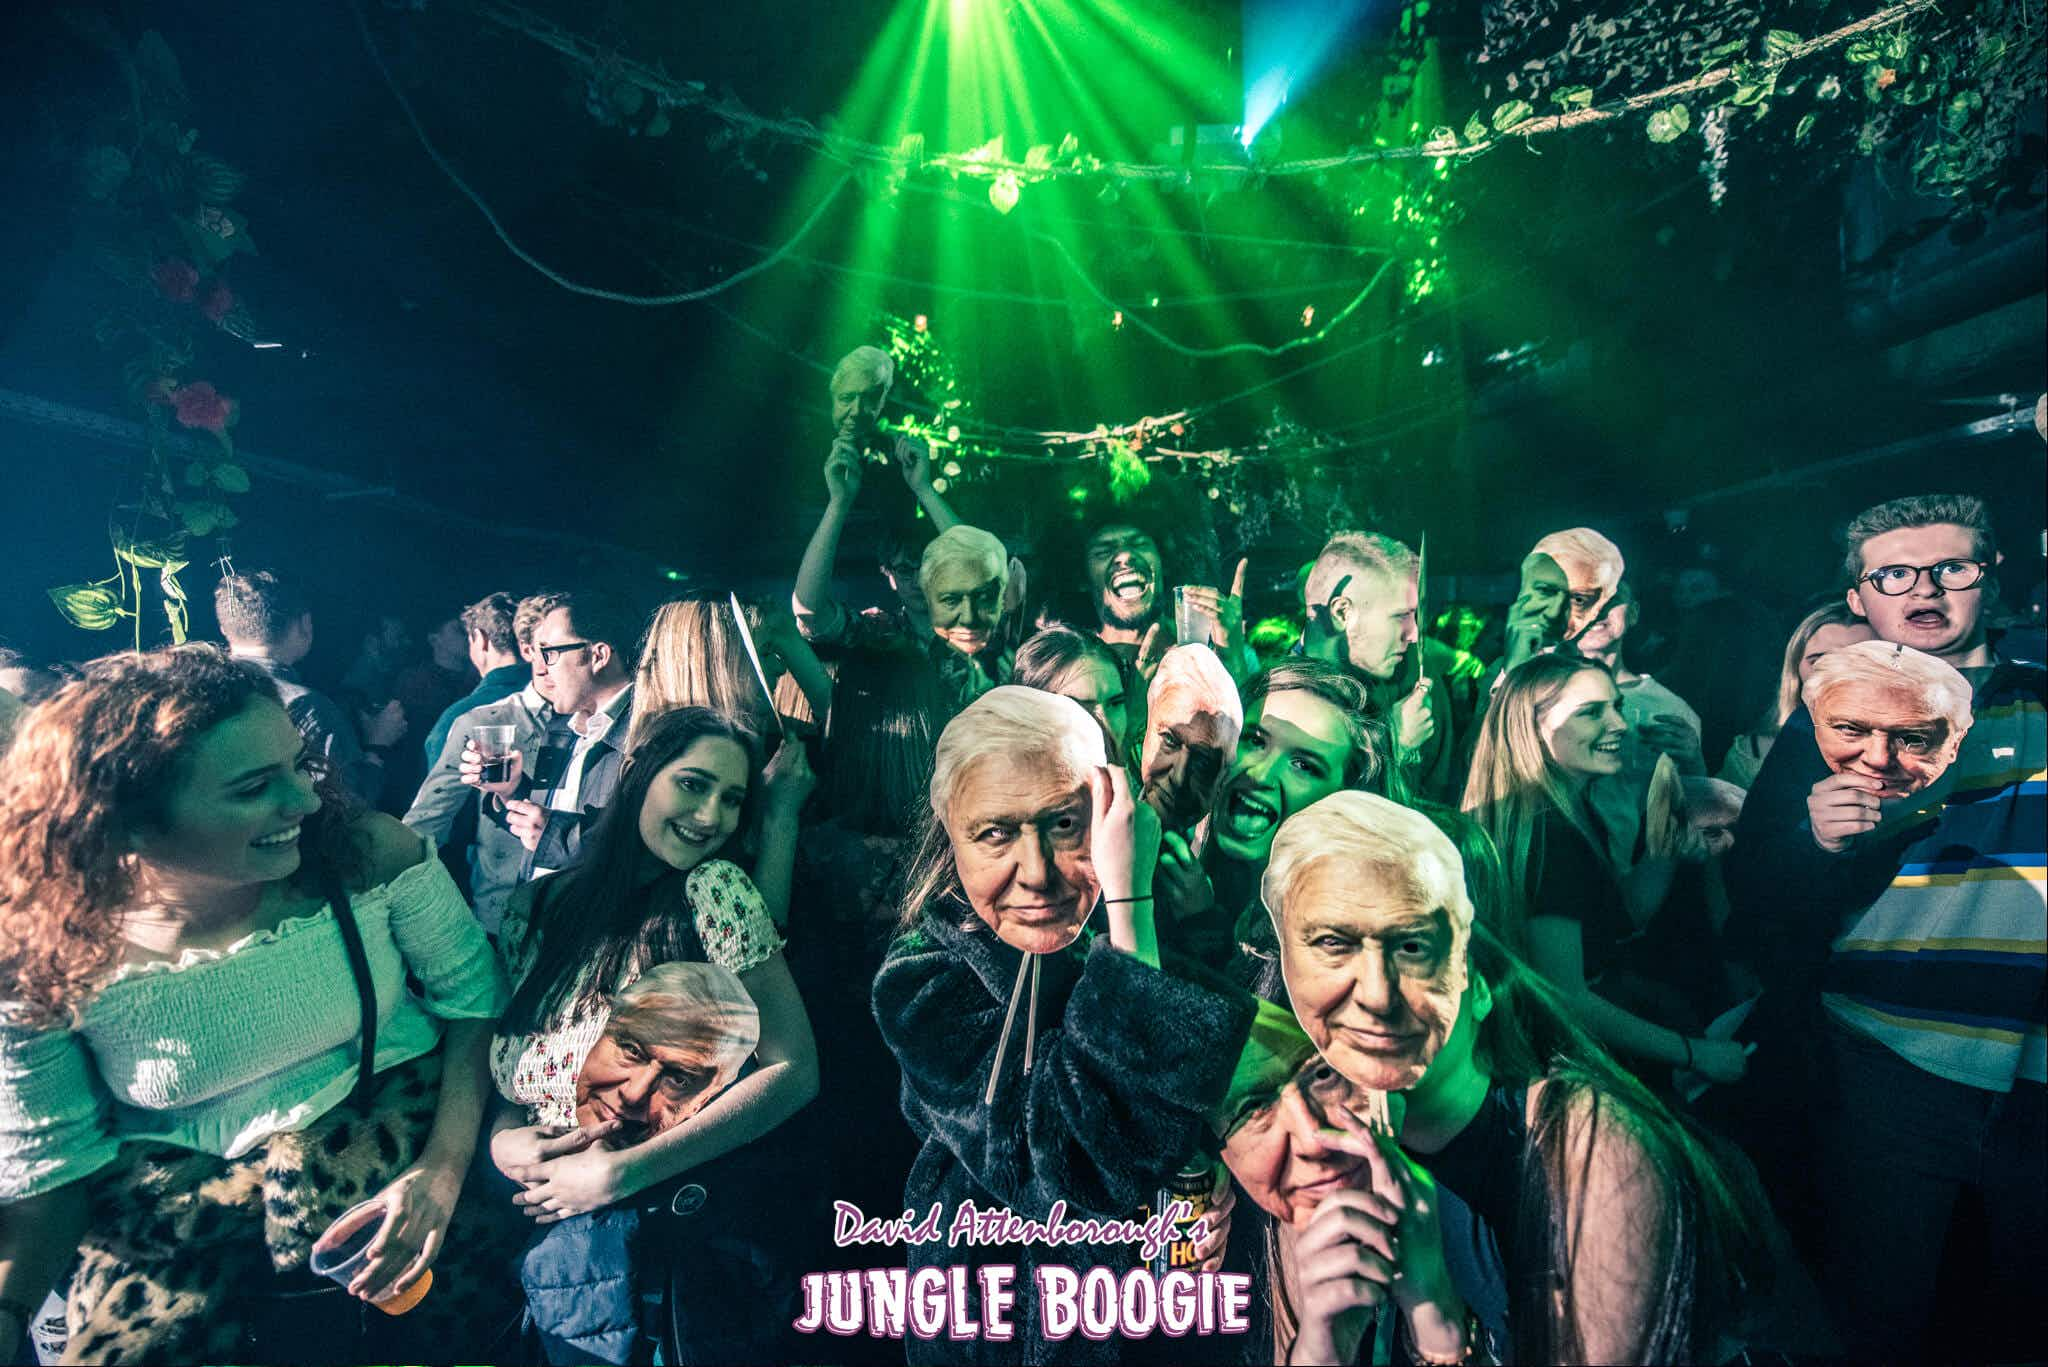 David Attenborough-themed raves are popping up all over the UK